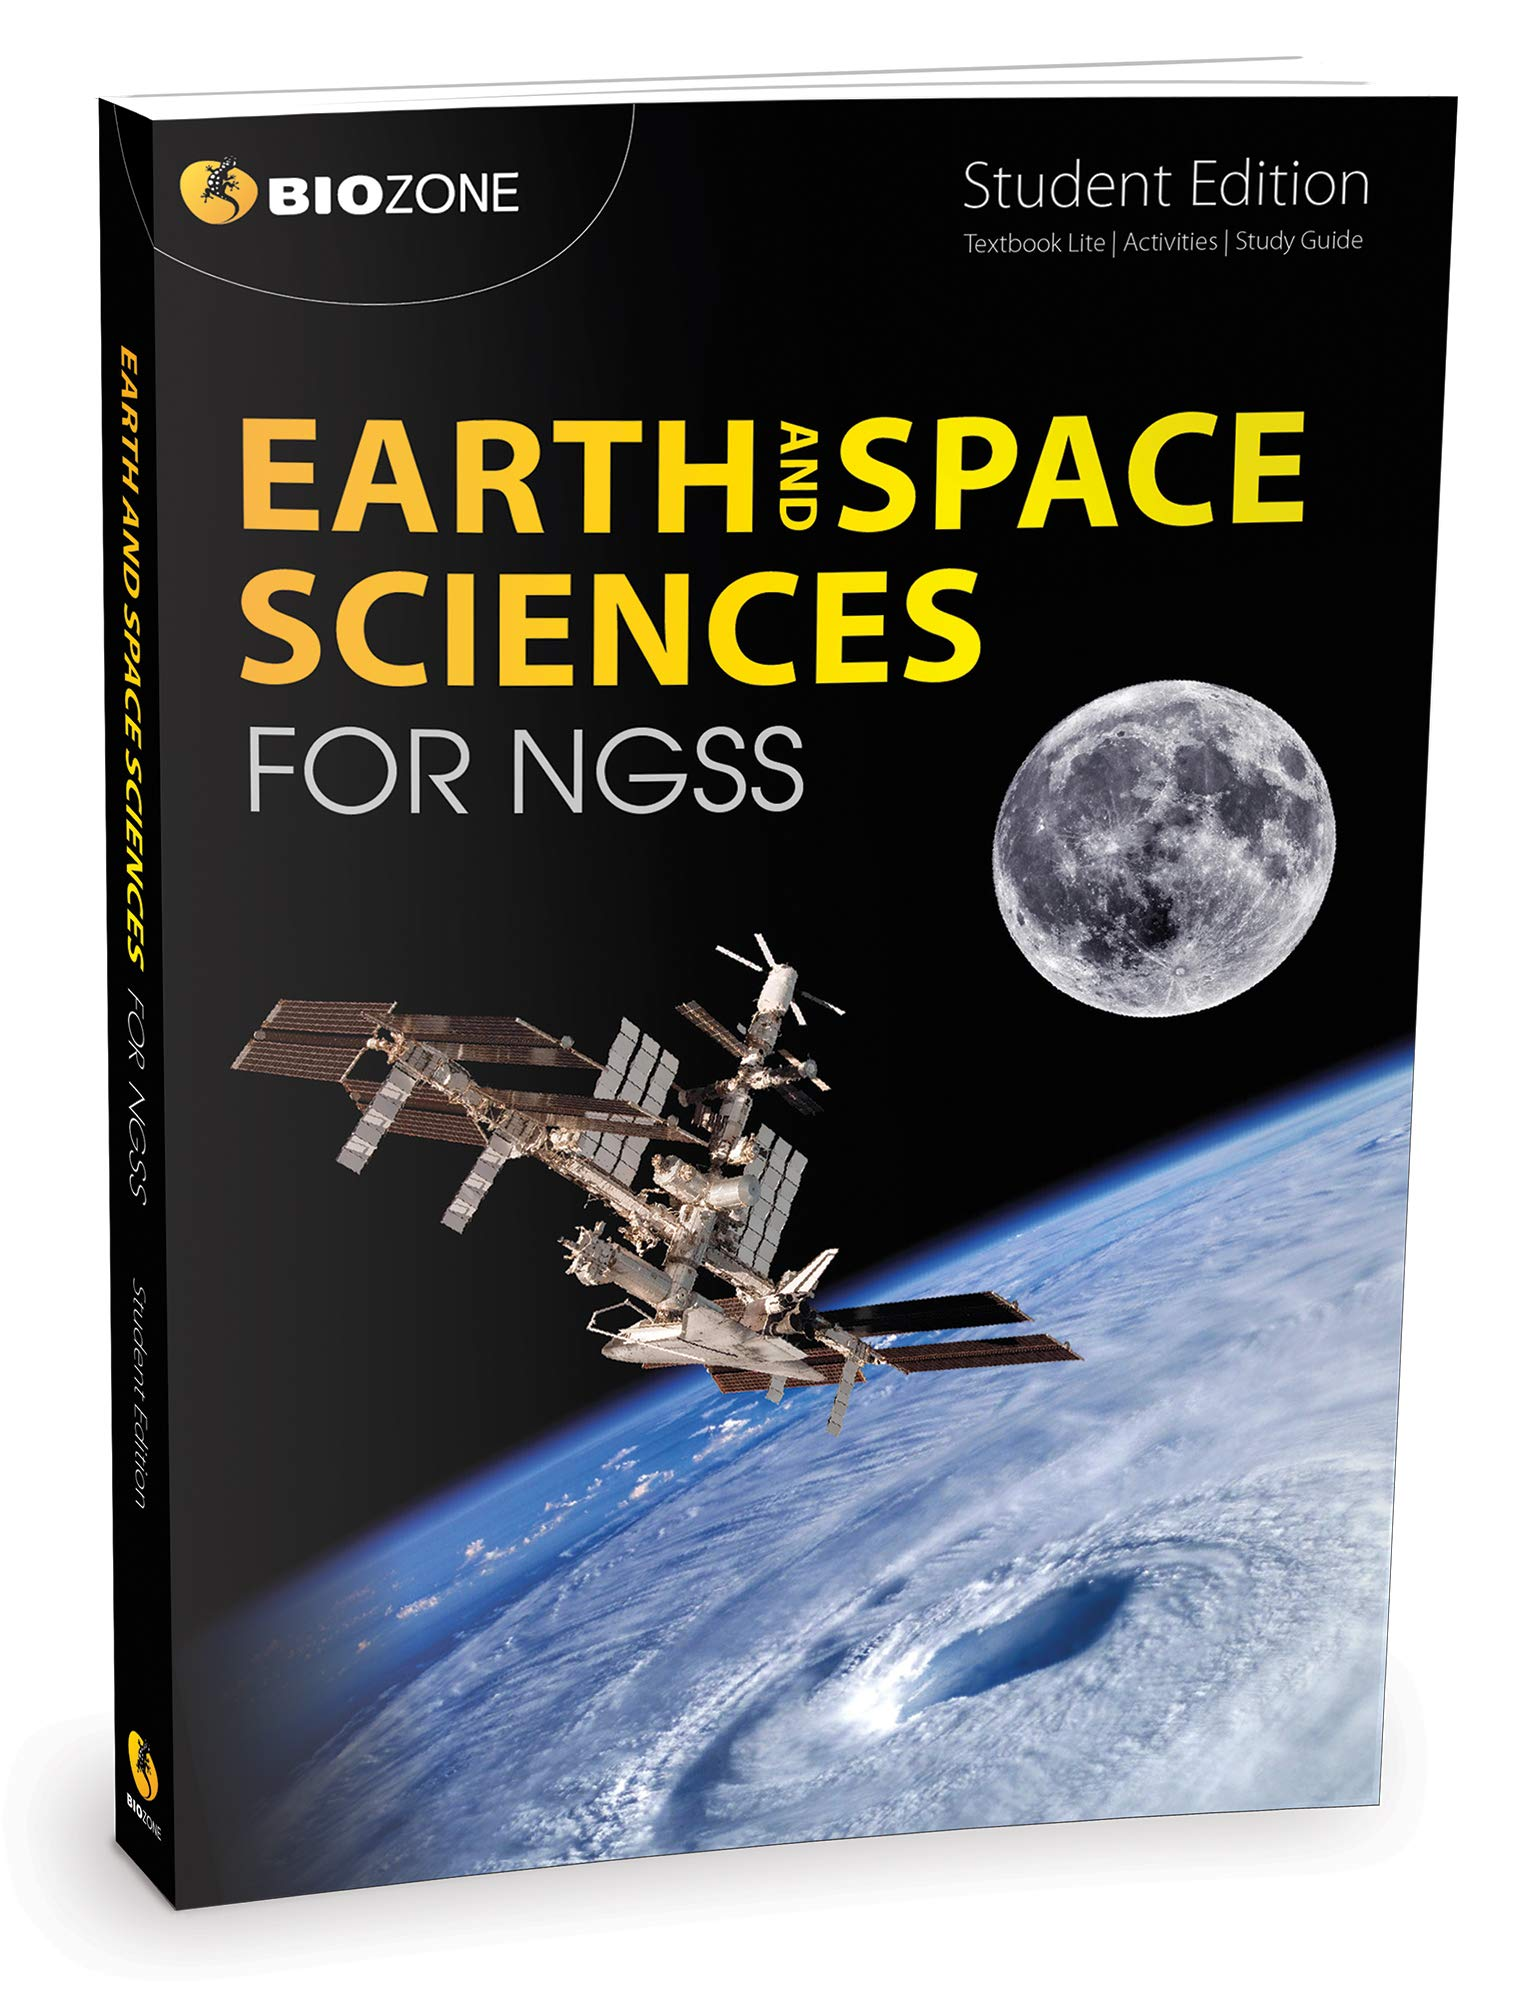 Earth and Space Science for NGSS (1st Ed) - Student Edition: Tracey  Greenwood, Lissa Bainbridge-Smith, Kent Pryor, Richard Allan:  9781927309377: Amazon.com: ...